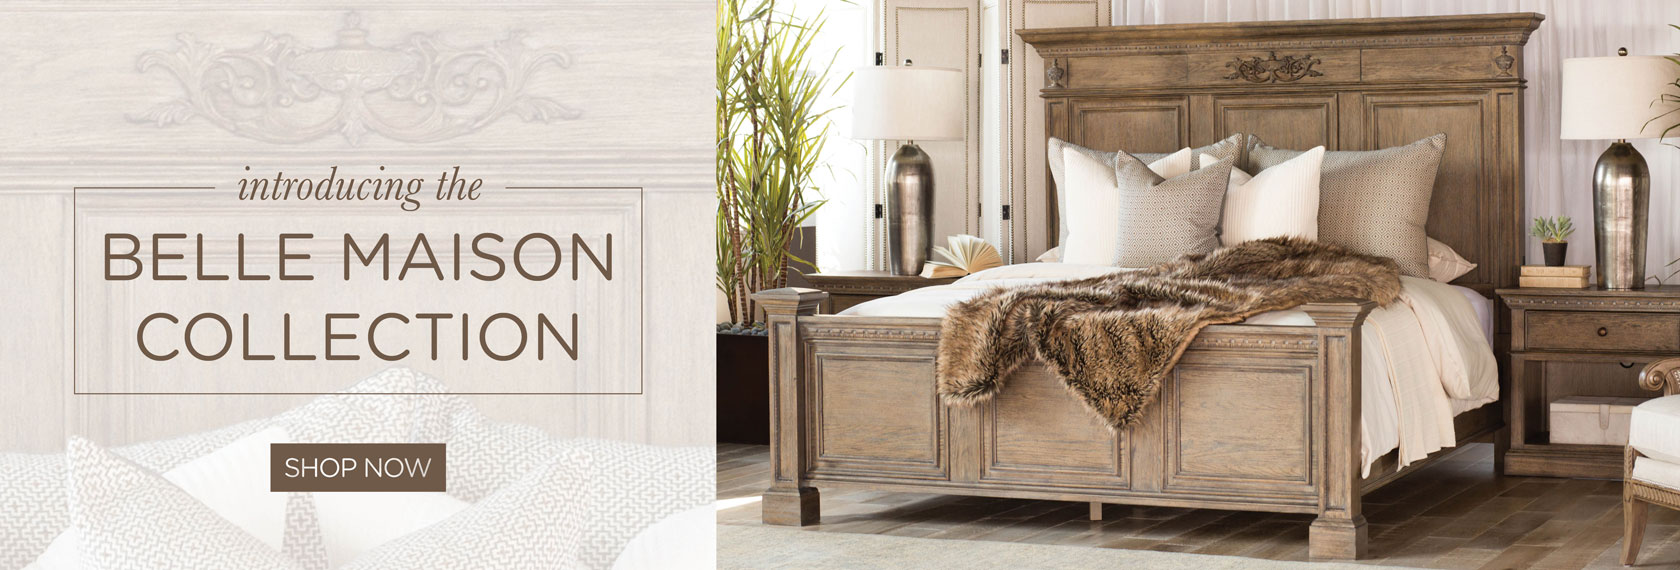 Aspen Belle Maison Collection